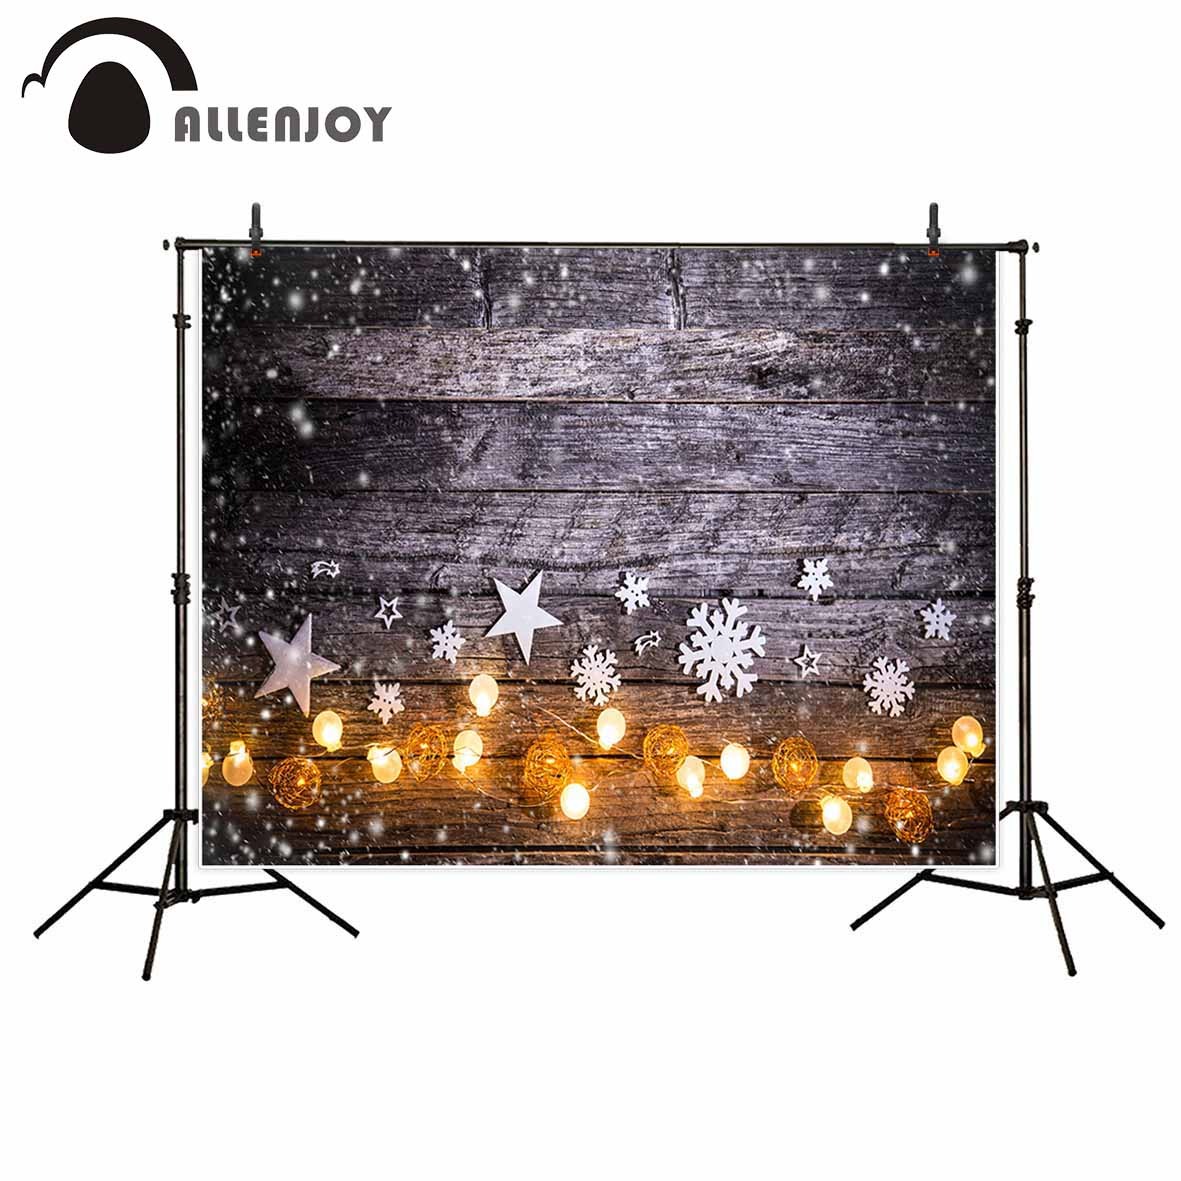 Allenjoy Vinyl material photography Classic retro snowflake lights Christmas children photography backdrops photo studio props allenjoy photography backdrops santa claus snow winter kids vinyl digital printing photo props profession christmas backgrounds